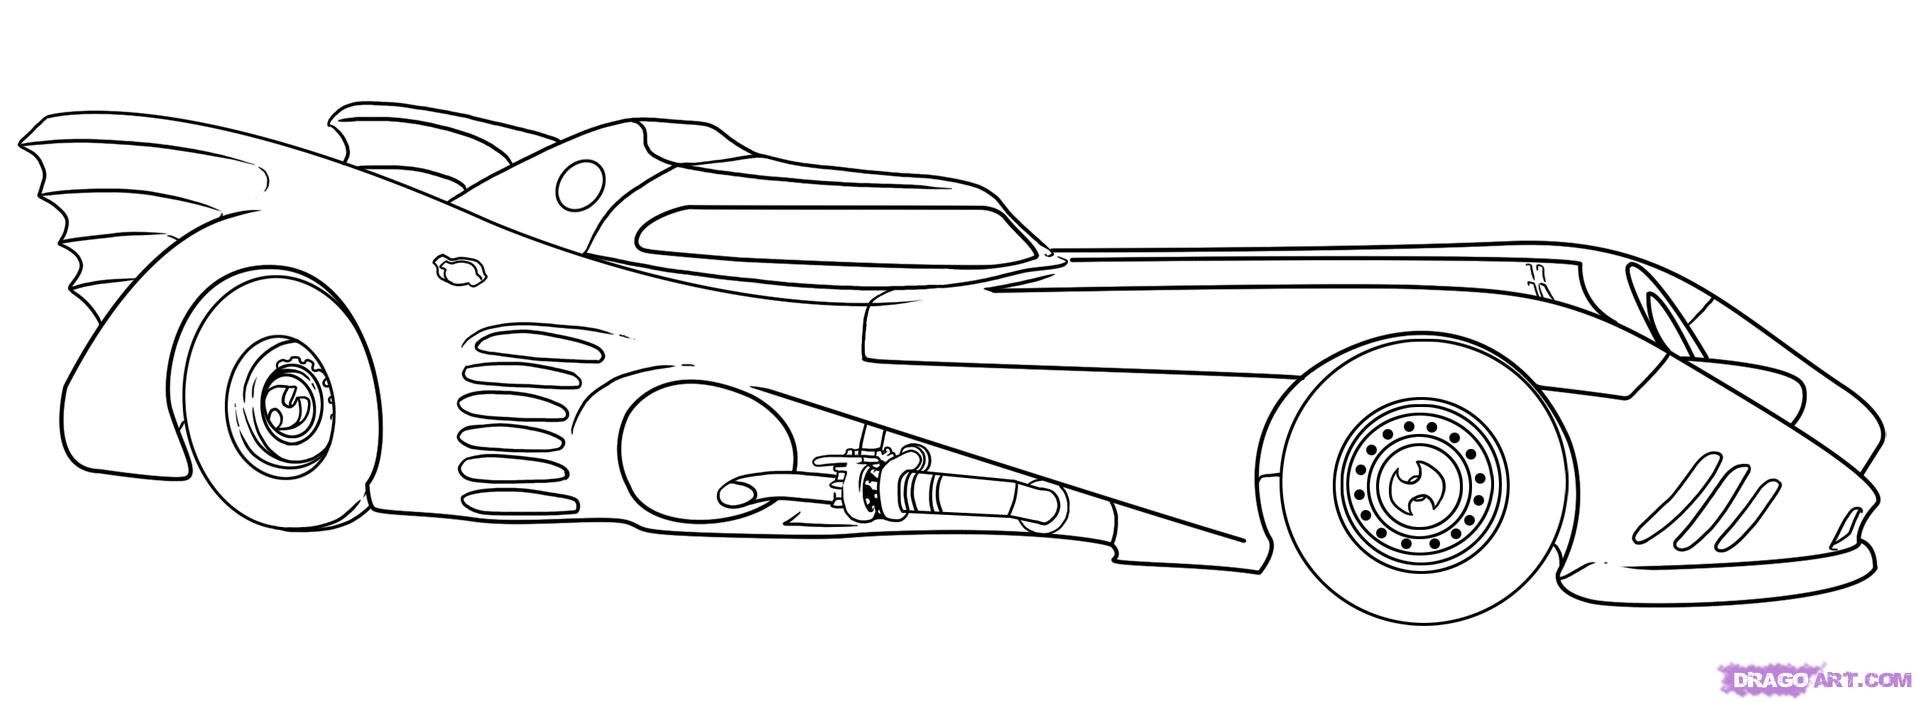 bat mobile coloring book pages - photo#1